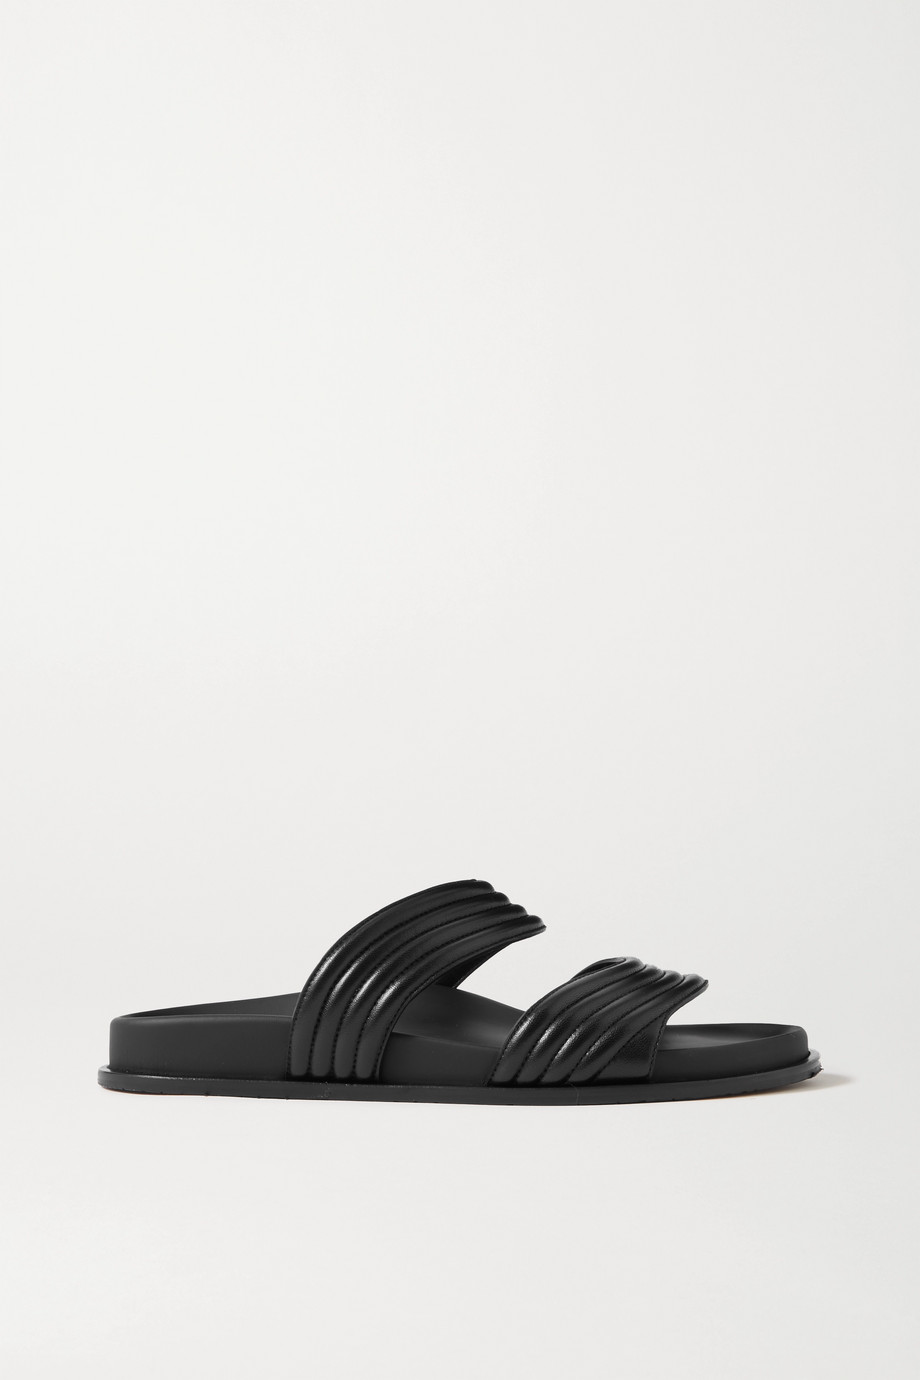 Alaïa Ribbed leather slides